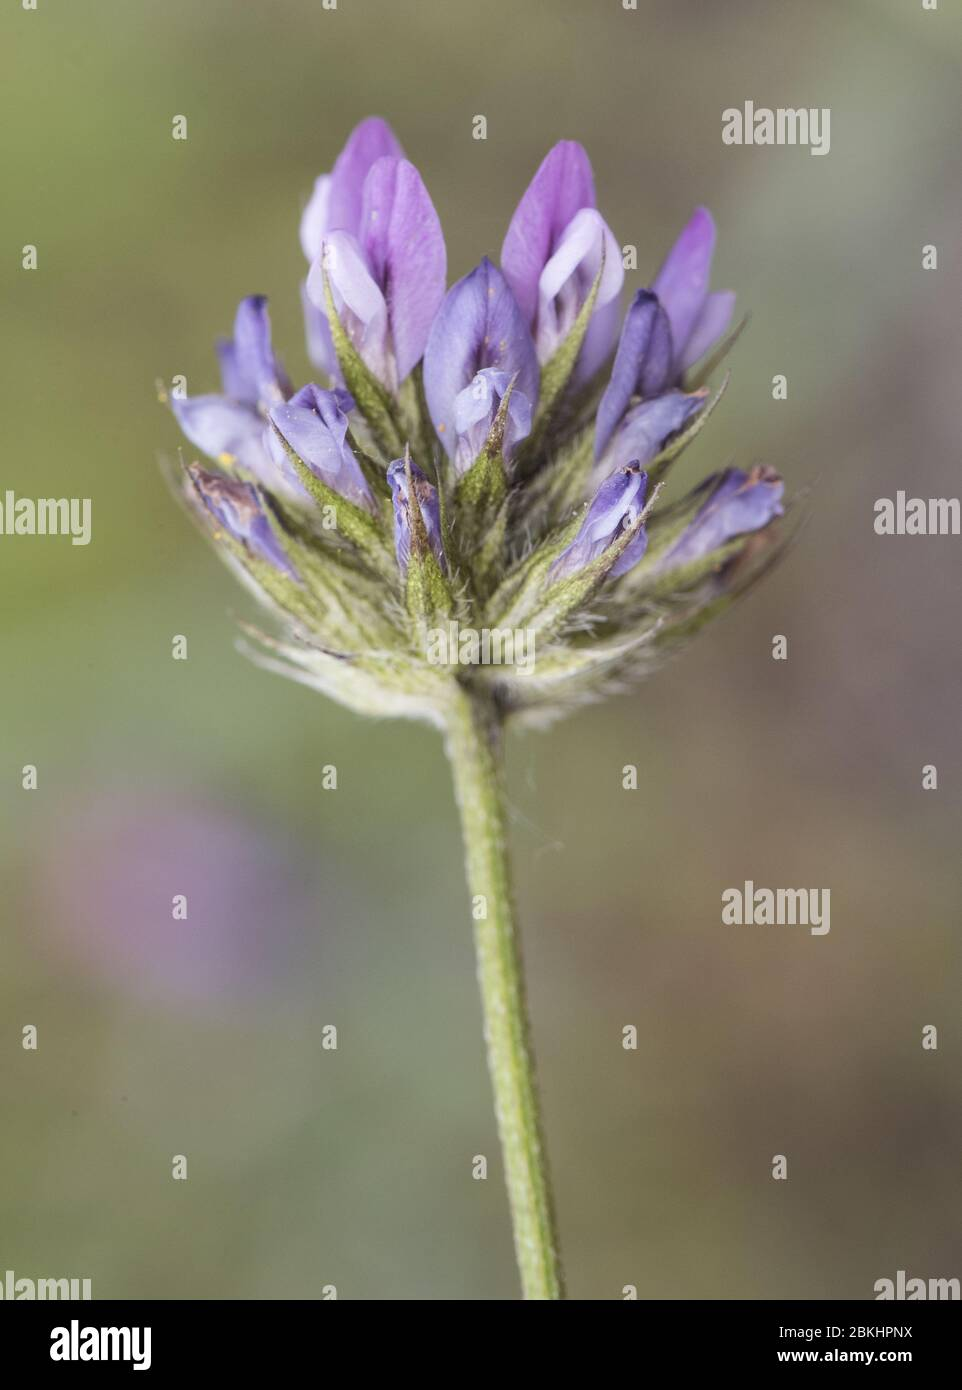 Bituminaria bitumosa the Arabian pea pitch trefoil clover-like plant with blue and white flowers on green background flash lighting Stock Photo